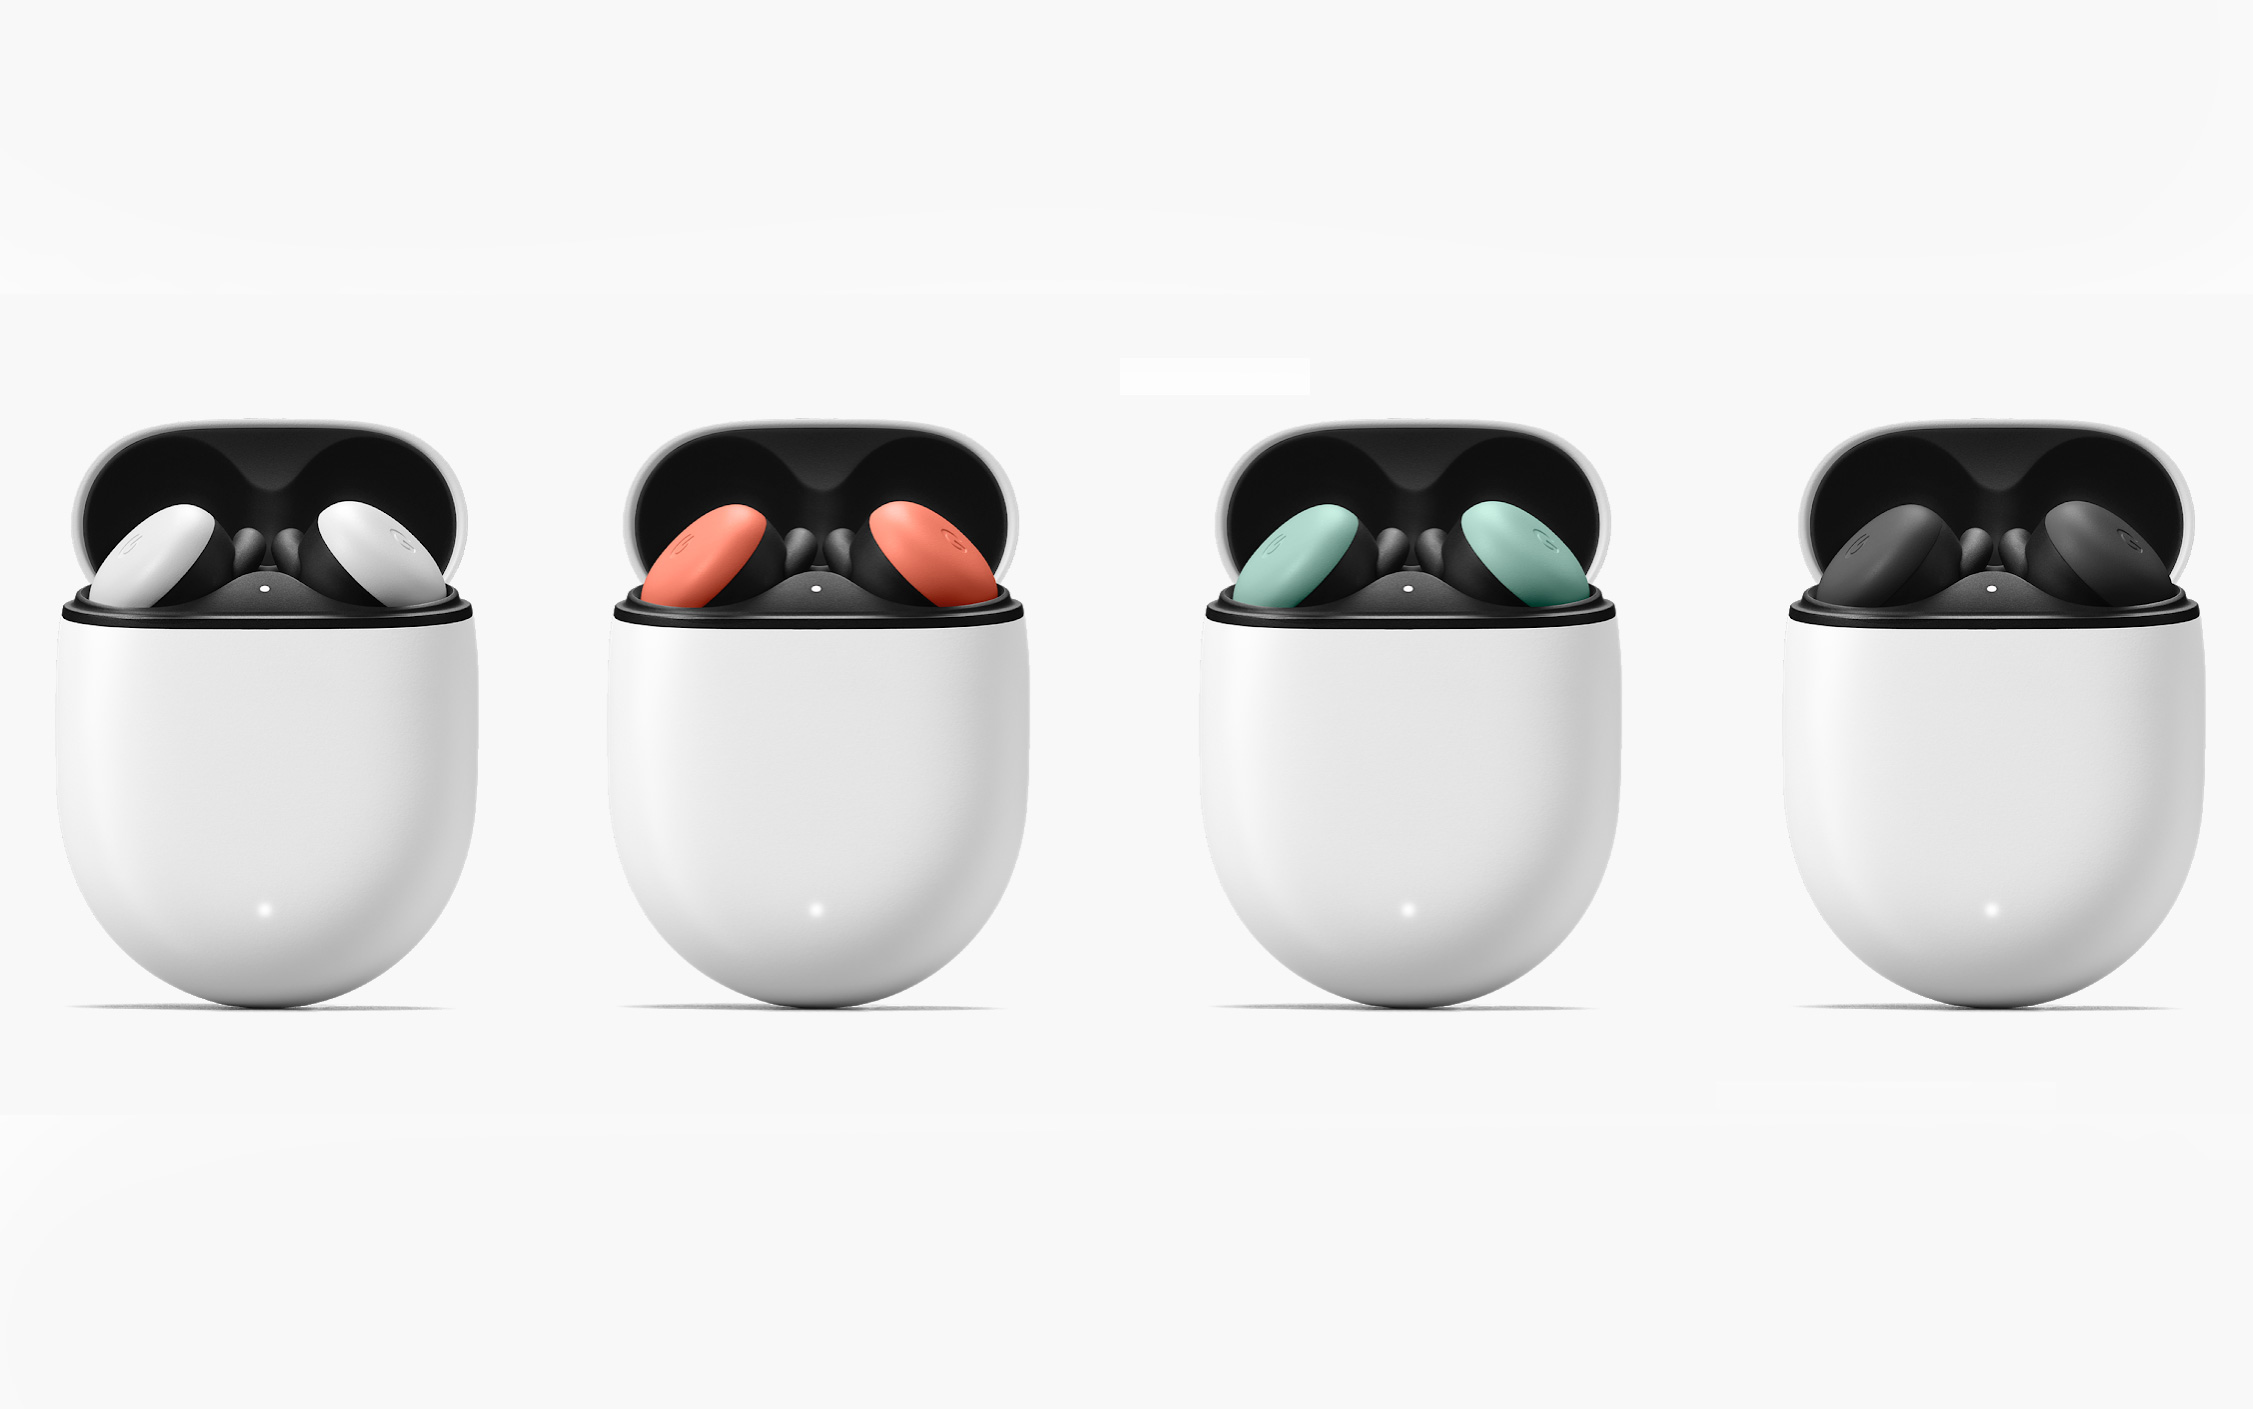 New Pixel Buds feature drop arrives along with more color options